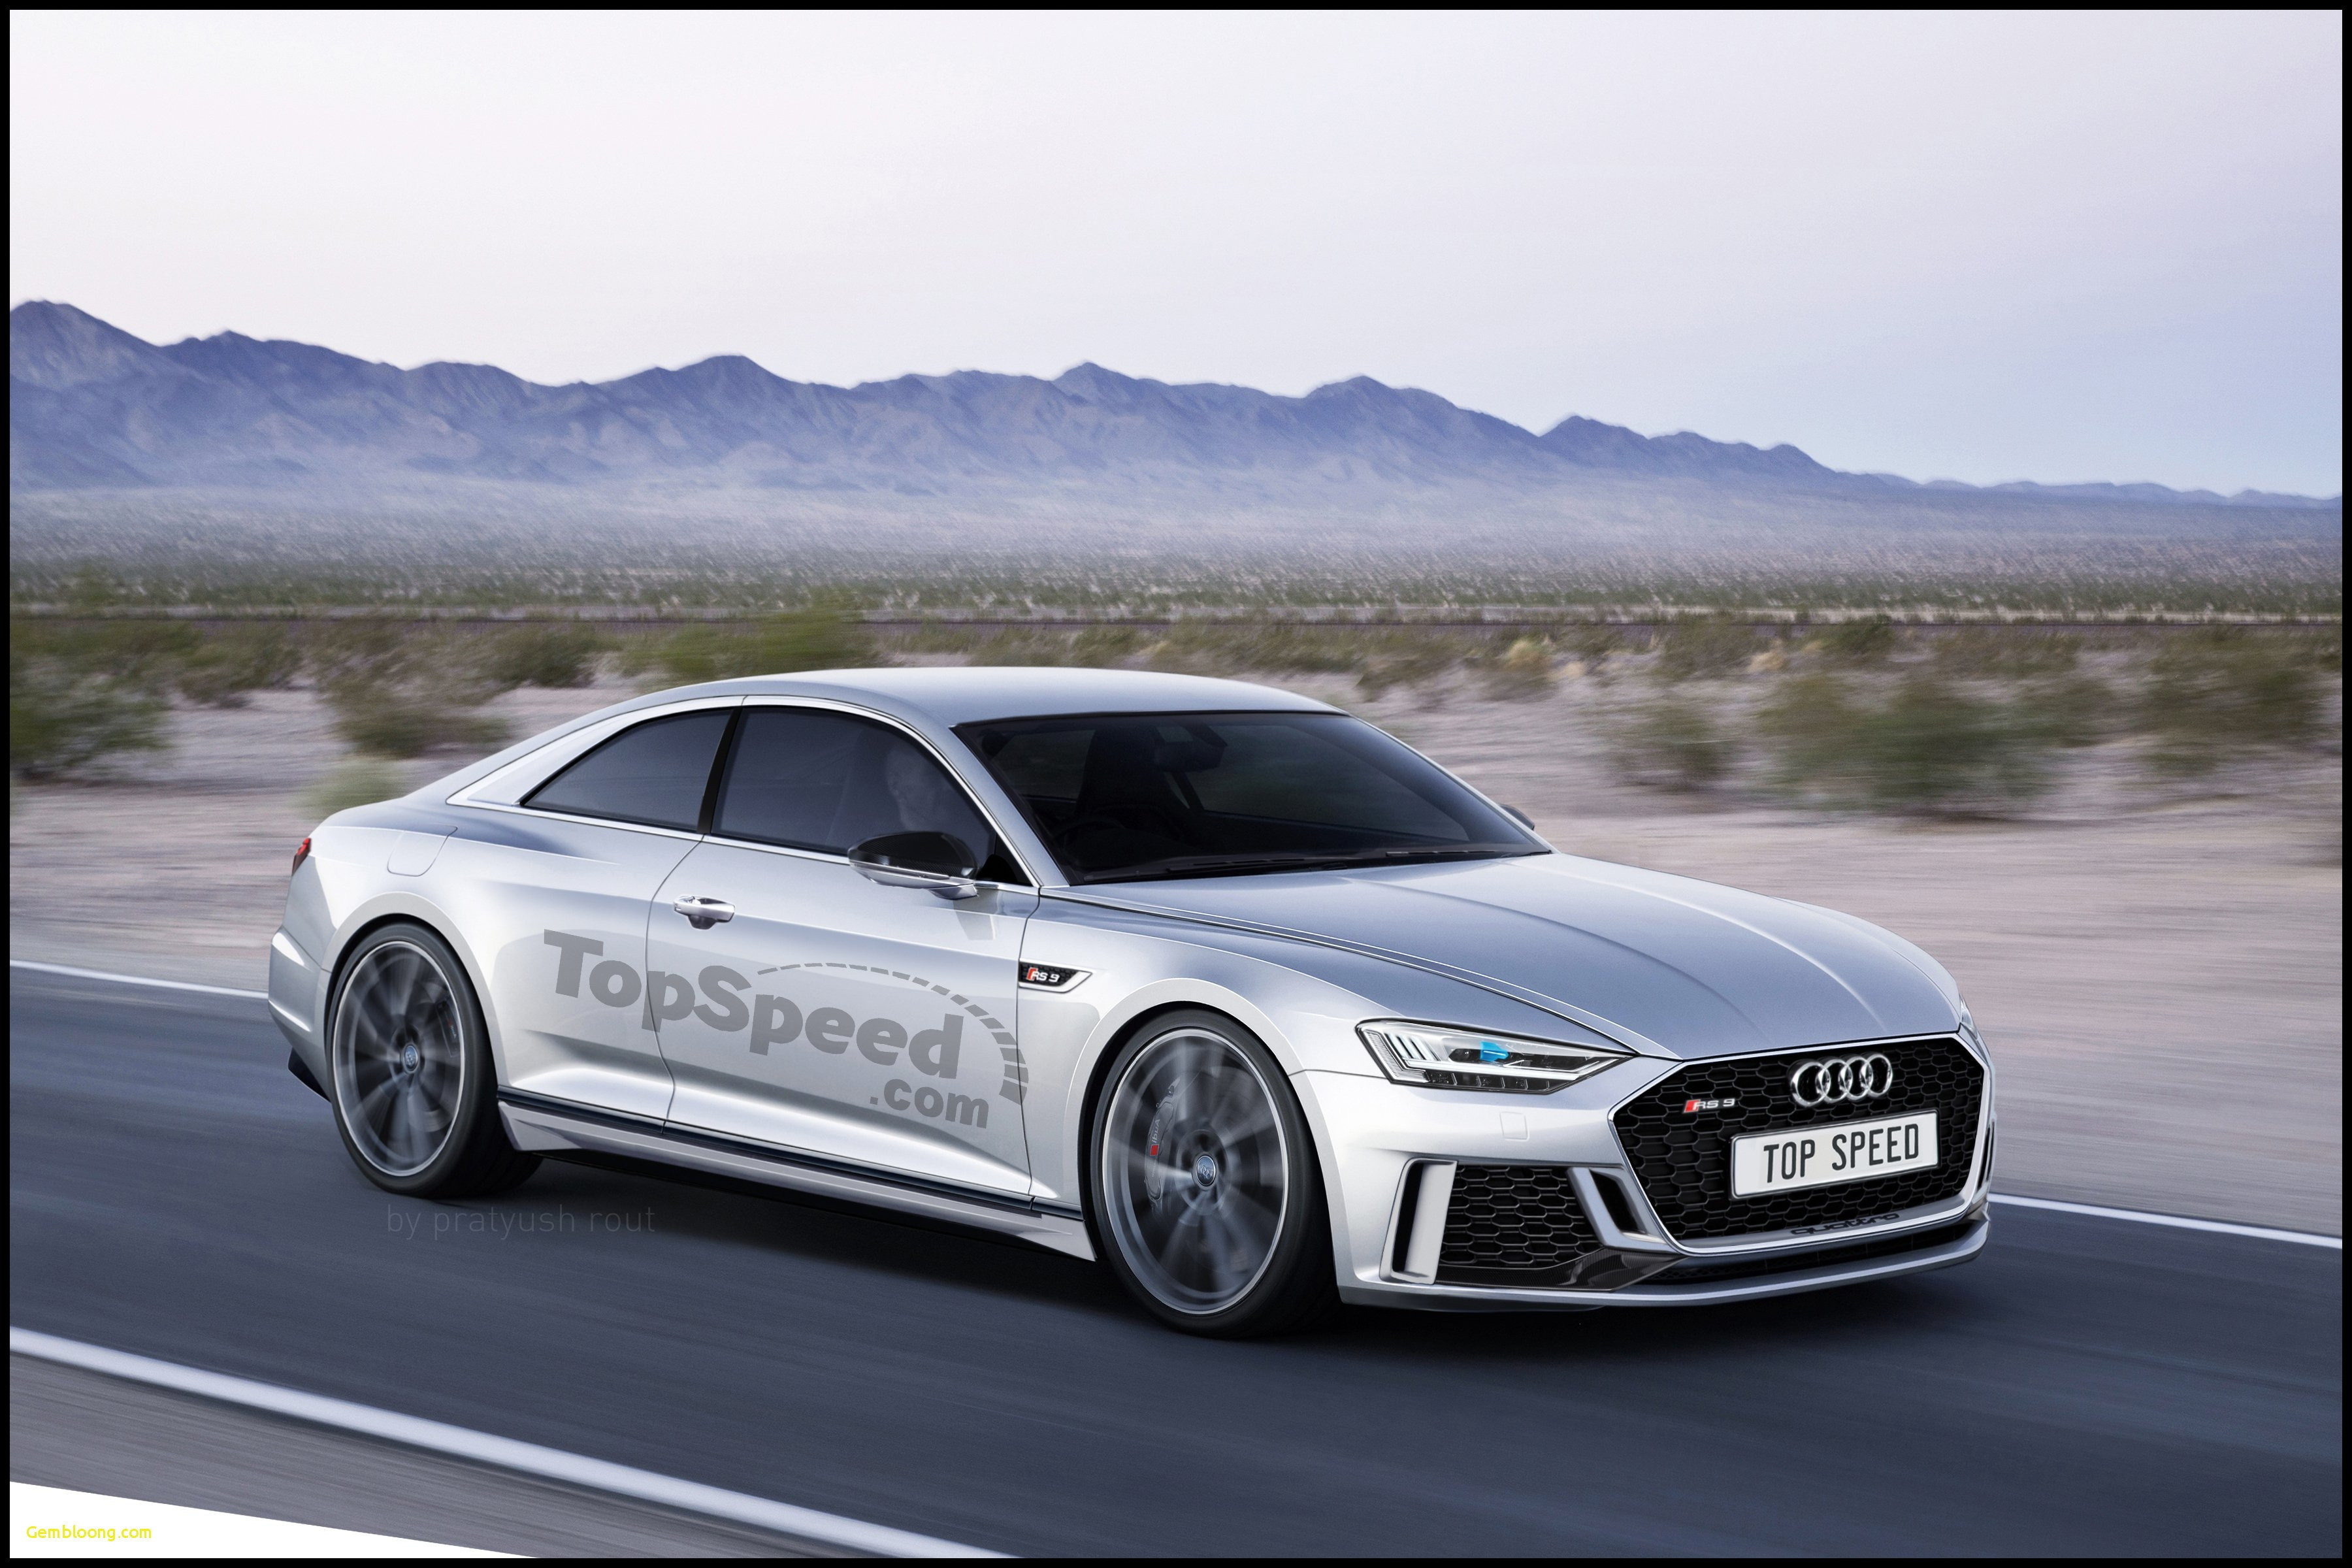 2019 Audi S7 Inspirational 2019 Audi Rs5 Tdi Neues Neuer Audi A7 Best Car Reviews